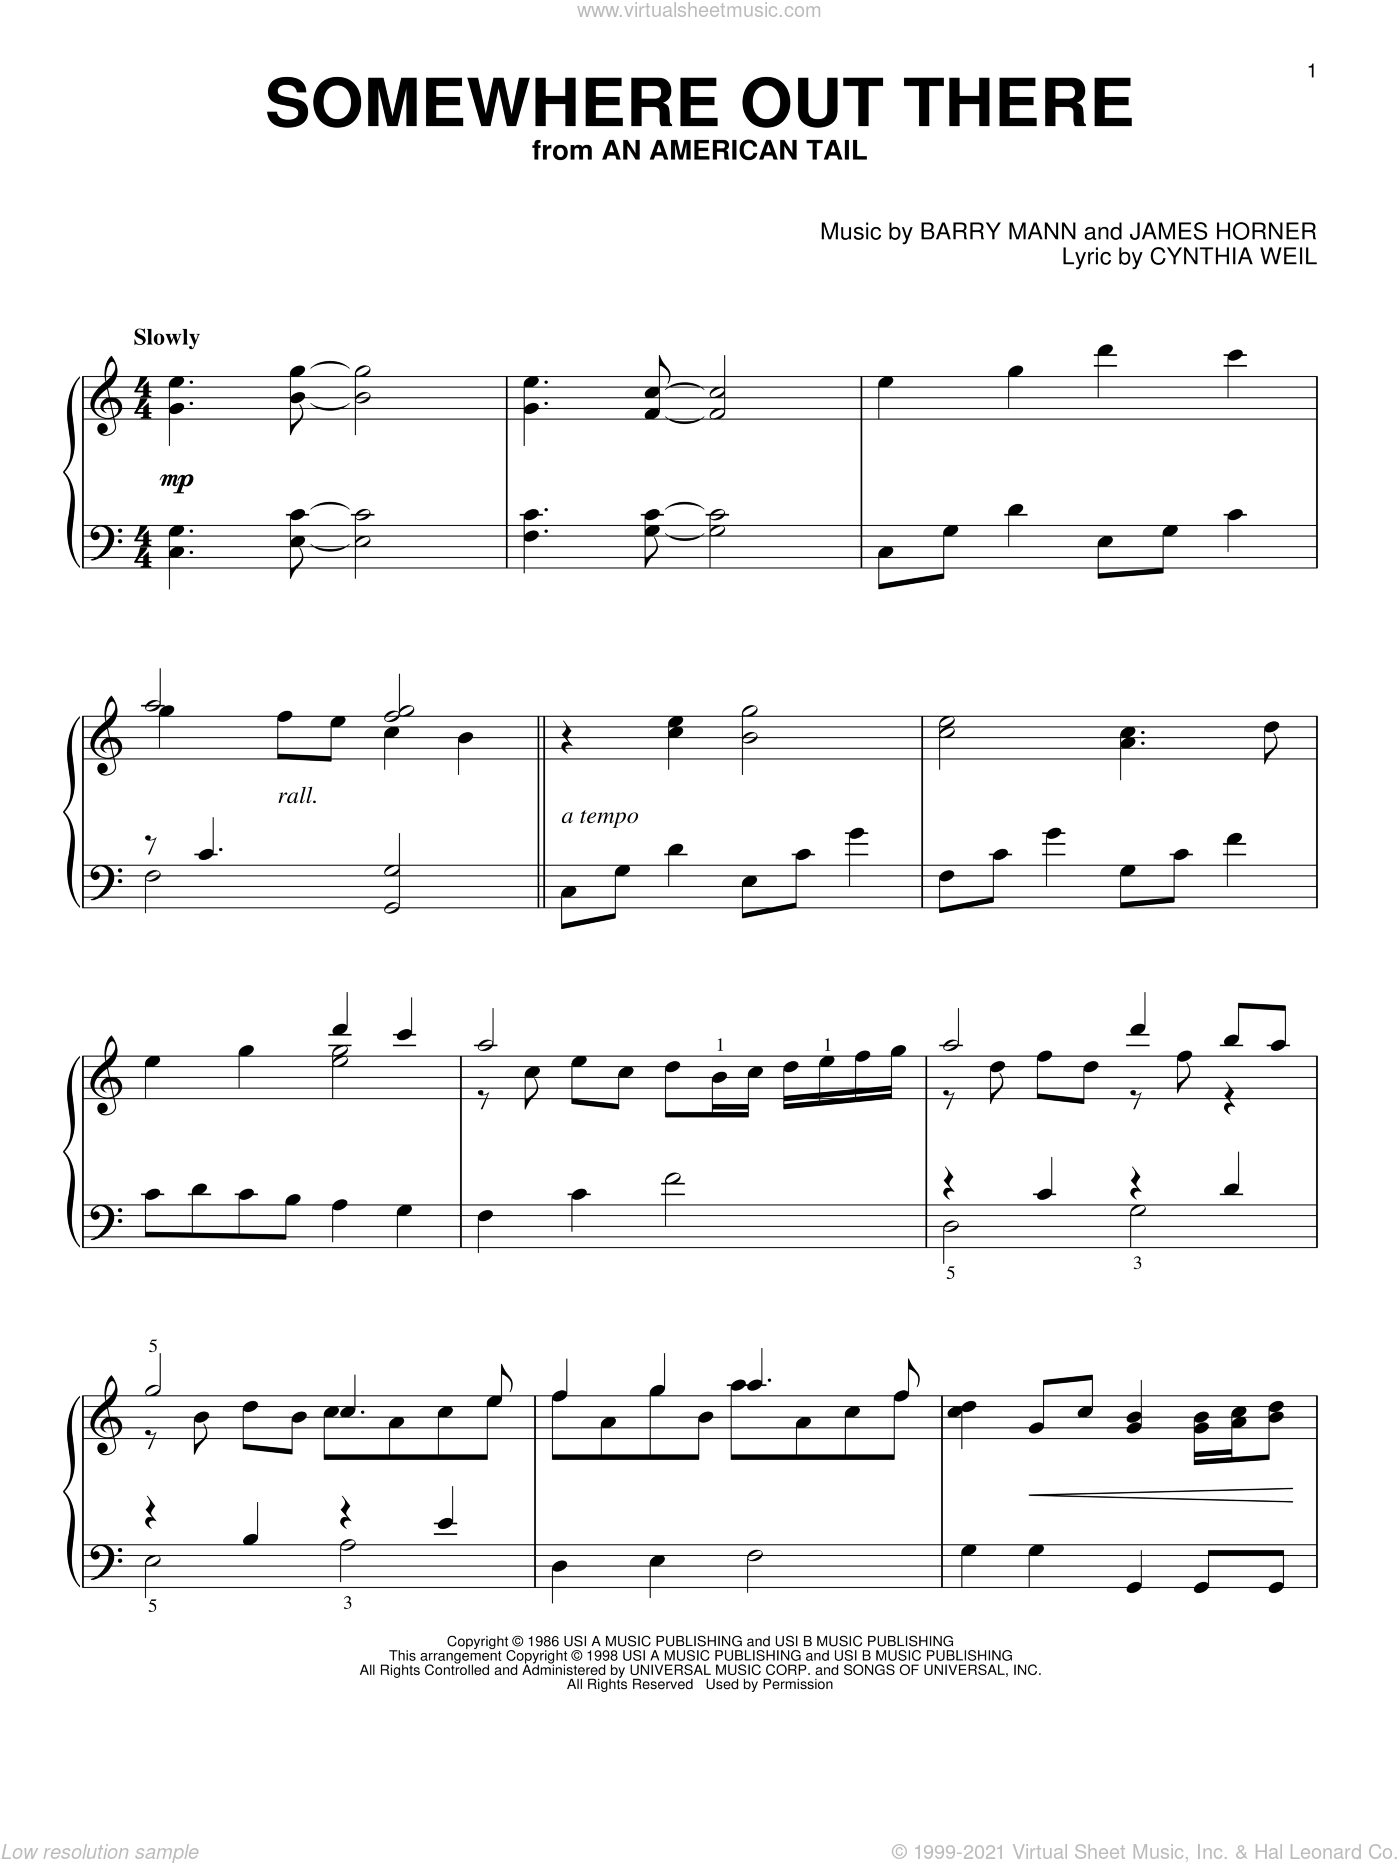 Somewhere Out There sheet music for piano solo by Cynthia Weil